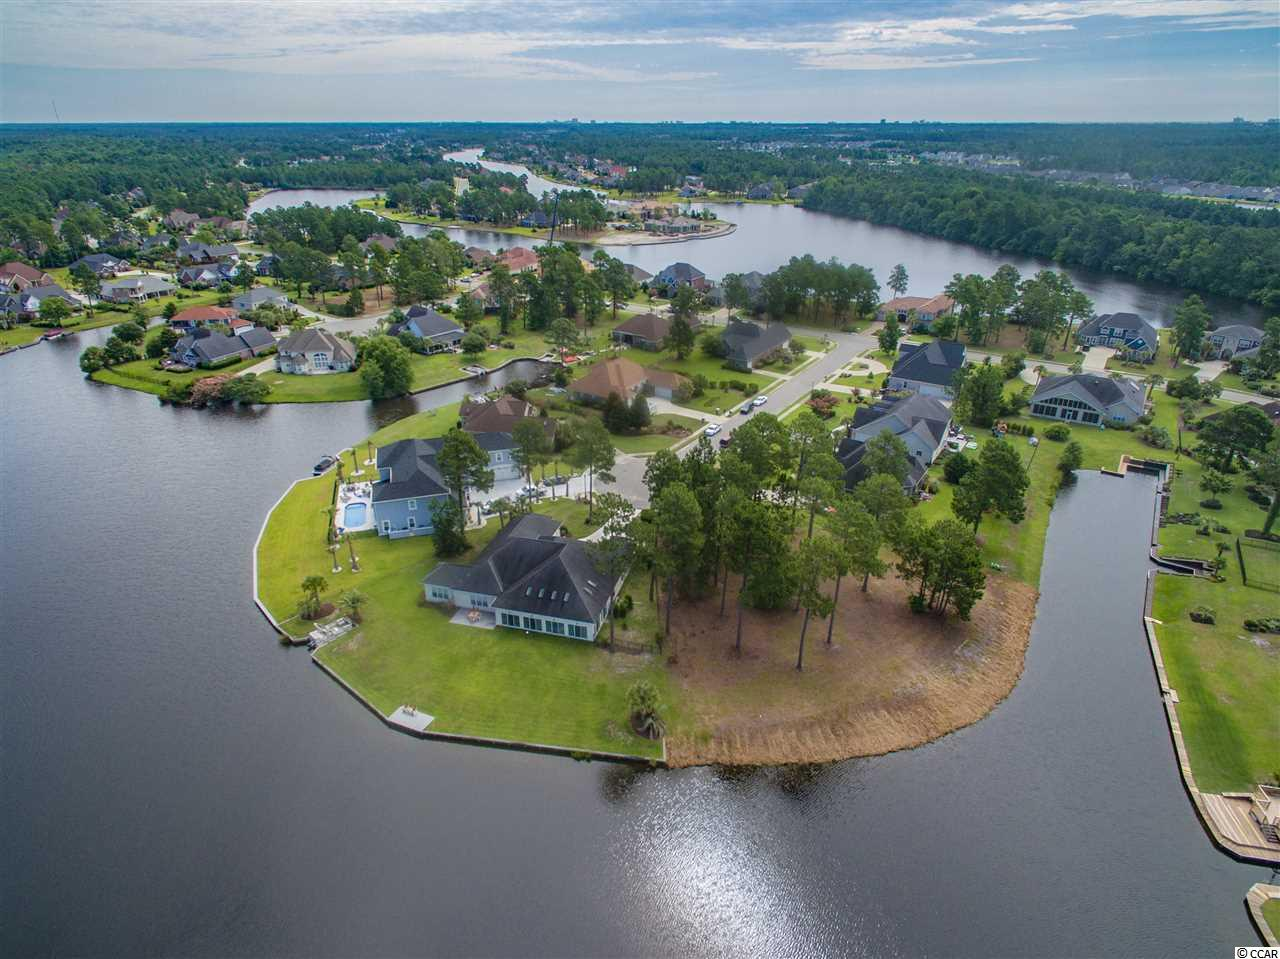 Beautiful LAKEFRONT lot in sought after Plantation Lakes! YOUR DREAM...Can be a reality! This lot features over 200' of beautiful shoreline, is located at the end of a quiet cul de sac and is ready for you to build on! Size is approximately .84 acres, making it one of the largest lots available. This exquisite  community is like no other.  Beautiful custom homes backing up to miles of intertwined shoreline- perfect for your pontoon boating pleasure!  The community offers over 15 miles of lake and top notch amenities including 2 Swimming Pools  connected with a waterfall, Club House with Fitness Center, Tennis, Day Docks, Horseshoe Pits, Play Grounds and more!  Awesome location in Carolina Forest and close to beaches, pools and shopping! There are very few lots left in this community so don't let this opportunity pass you by. All measurements are approximate and buyers are responsible to verify any information that pertains to them making a decision. Owner/Seller licensed Maryland Agent